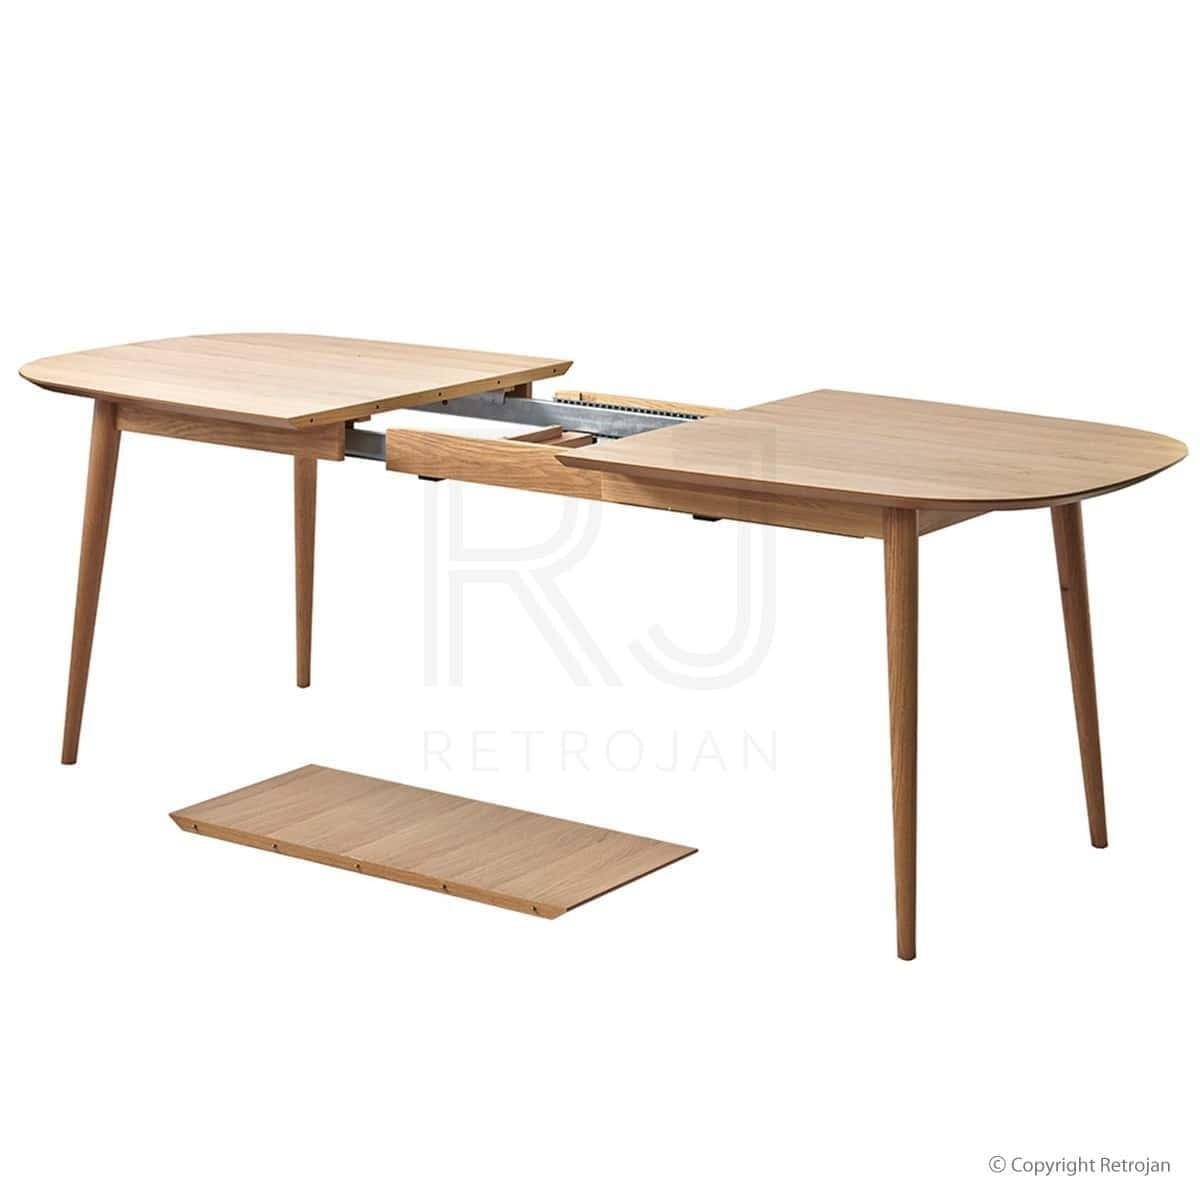 Buy mia extension dining table oak online retrojan for Extension dining table